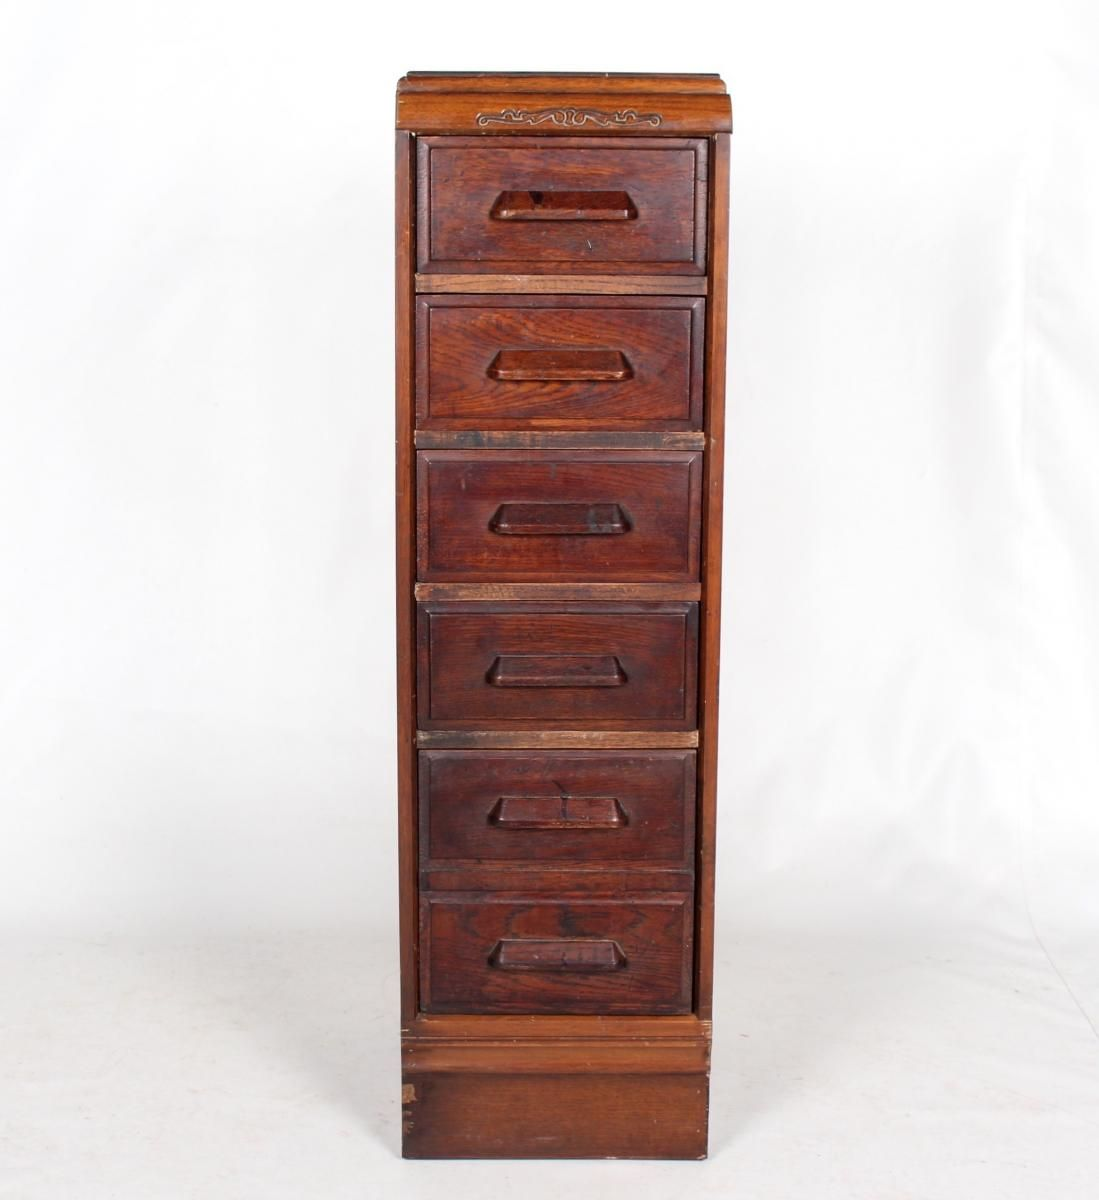 Vintage Oak Filing Cabinet Chest Of Drawers 1 (With Images